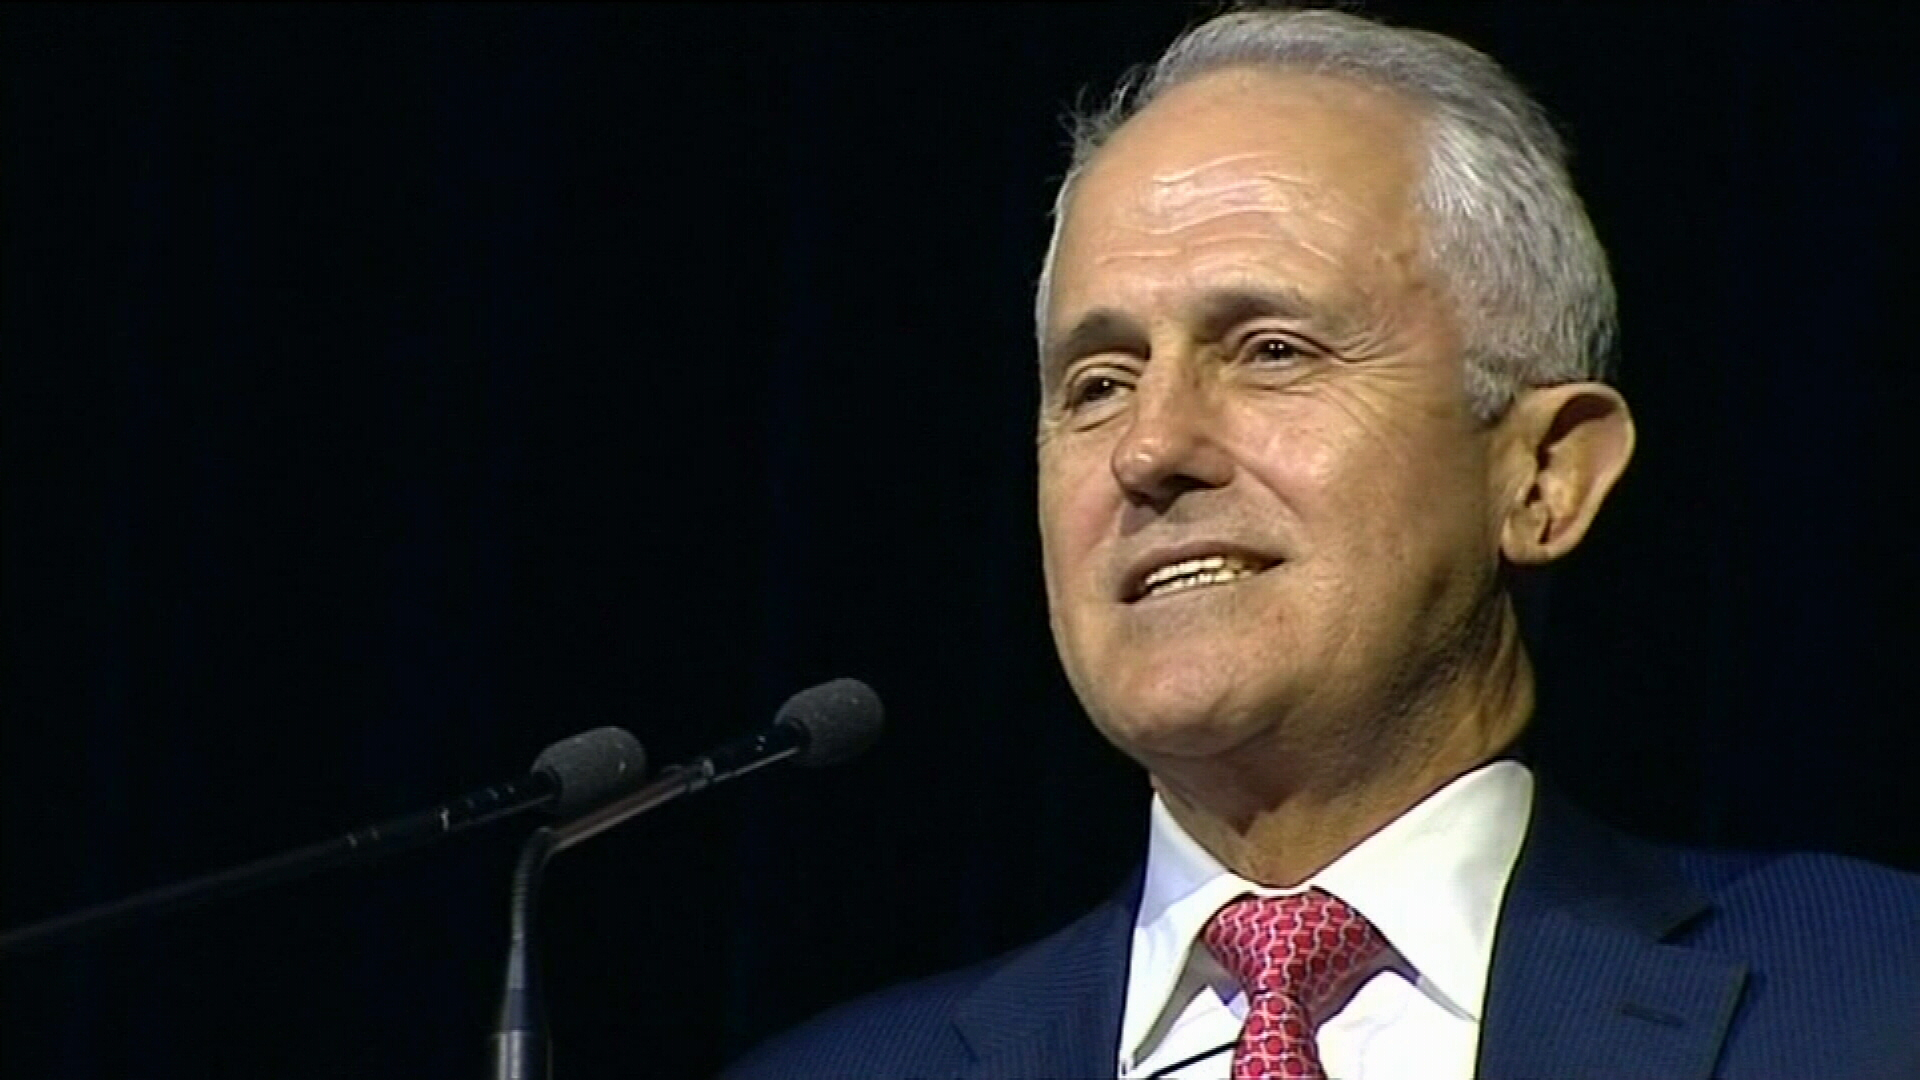 Turnbull winning over voters with energy policy